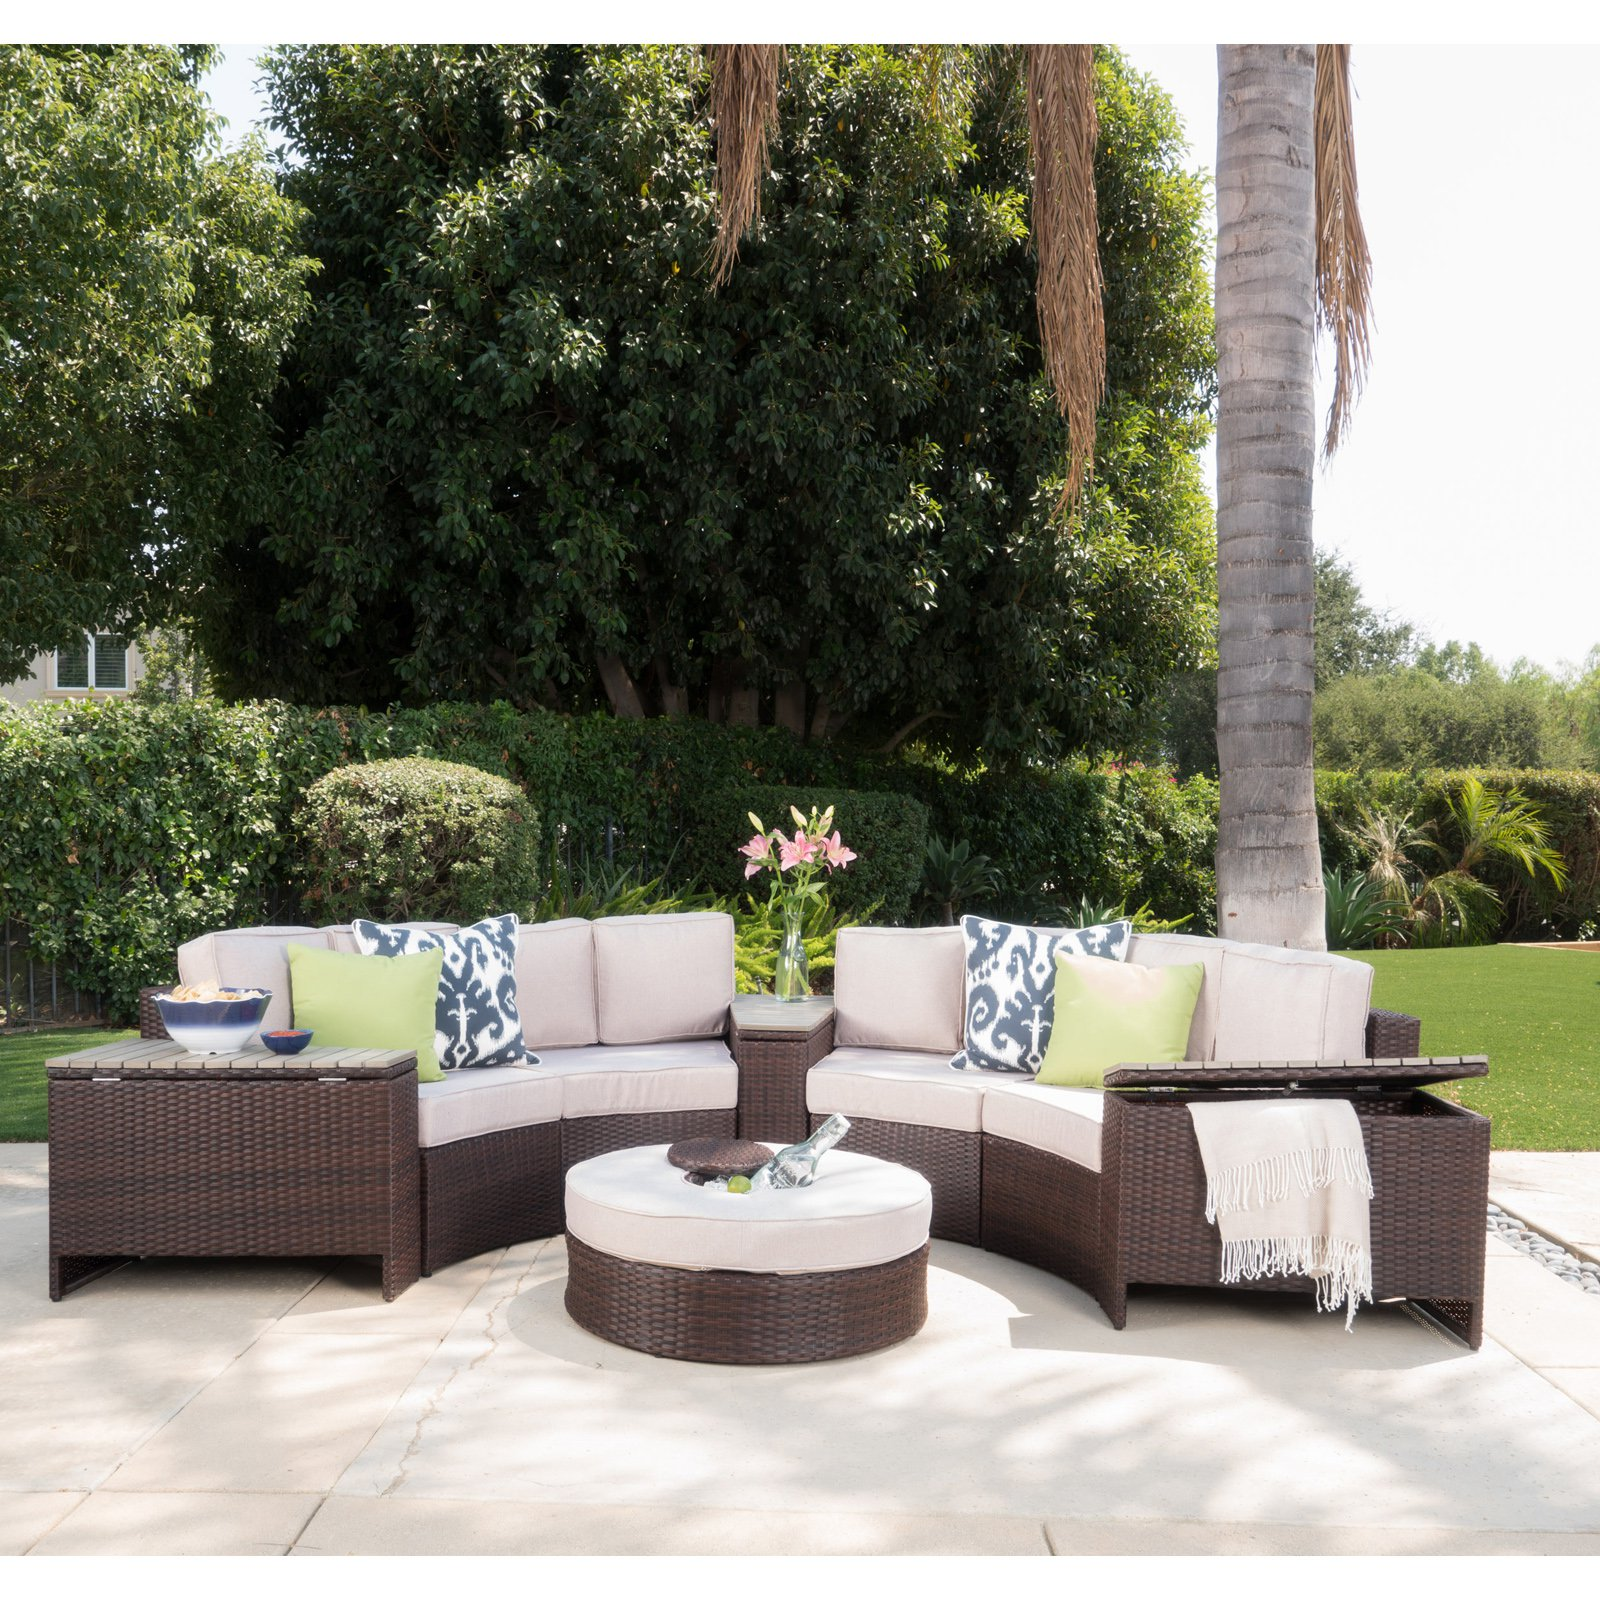 Madras Tortuga Wicker 8 Piece Patio Conversation Set with Ice Bucket Ottoman by Overstock